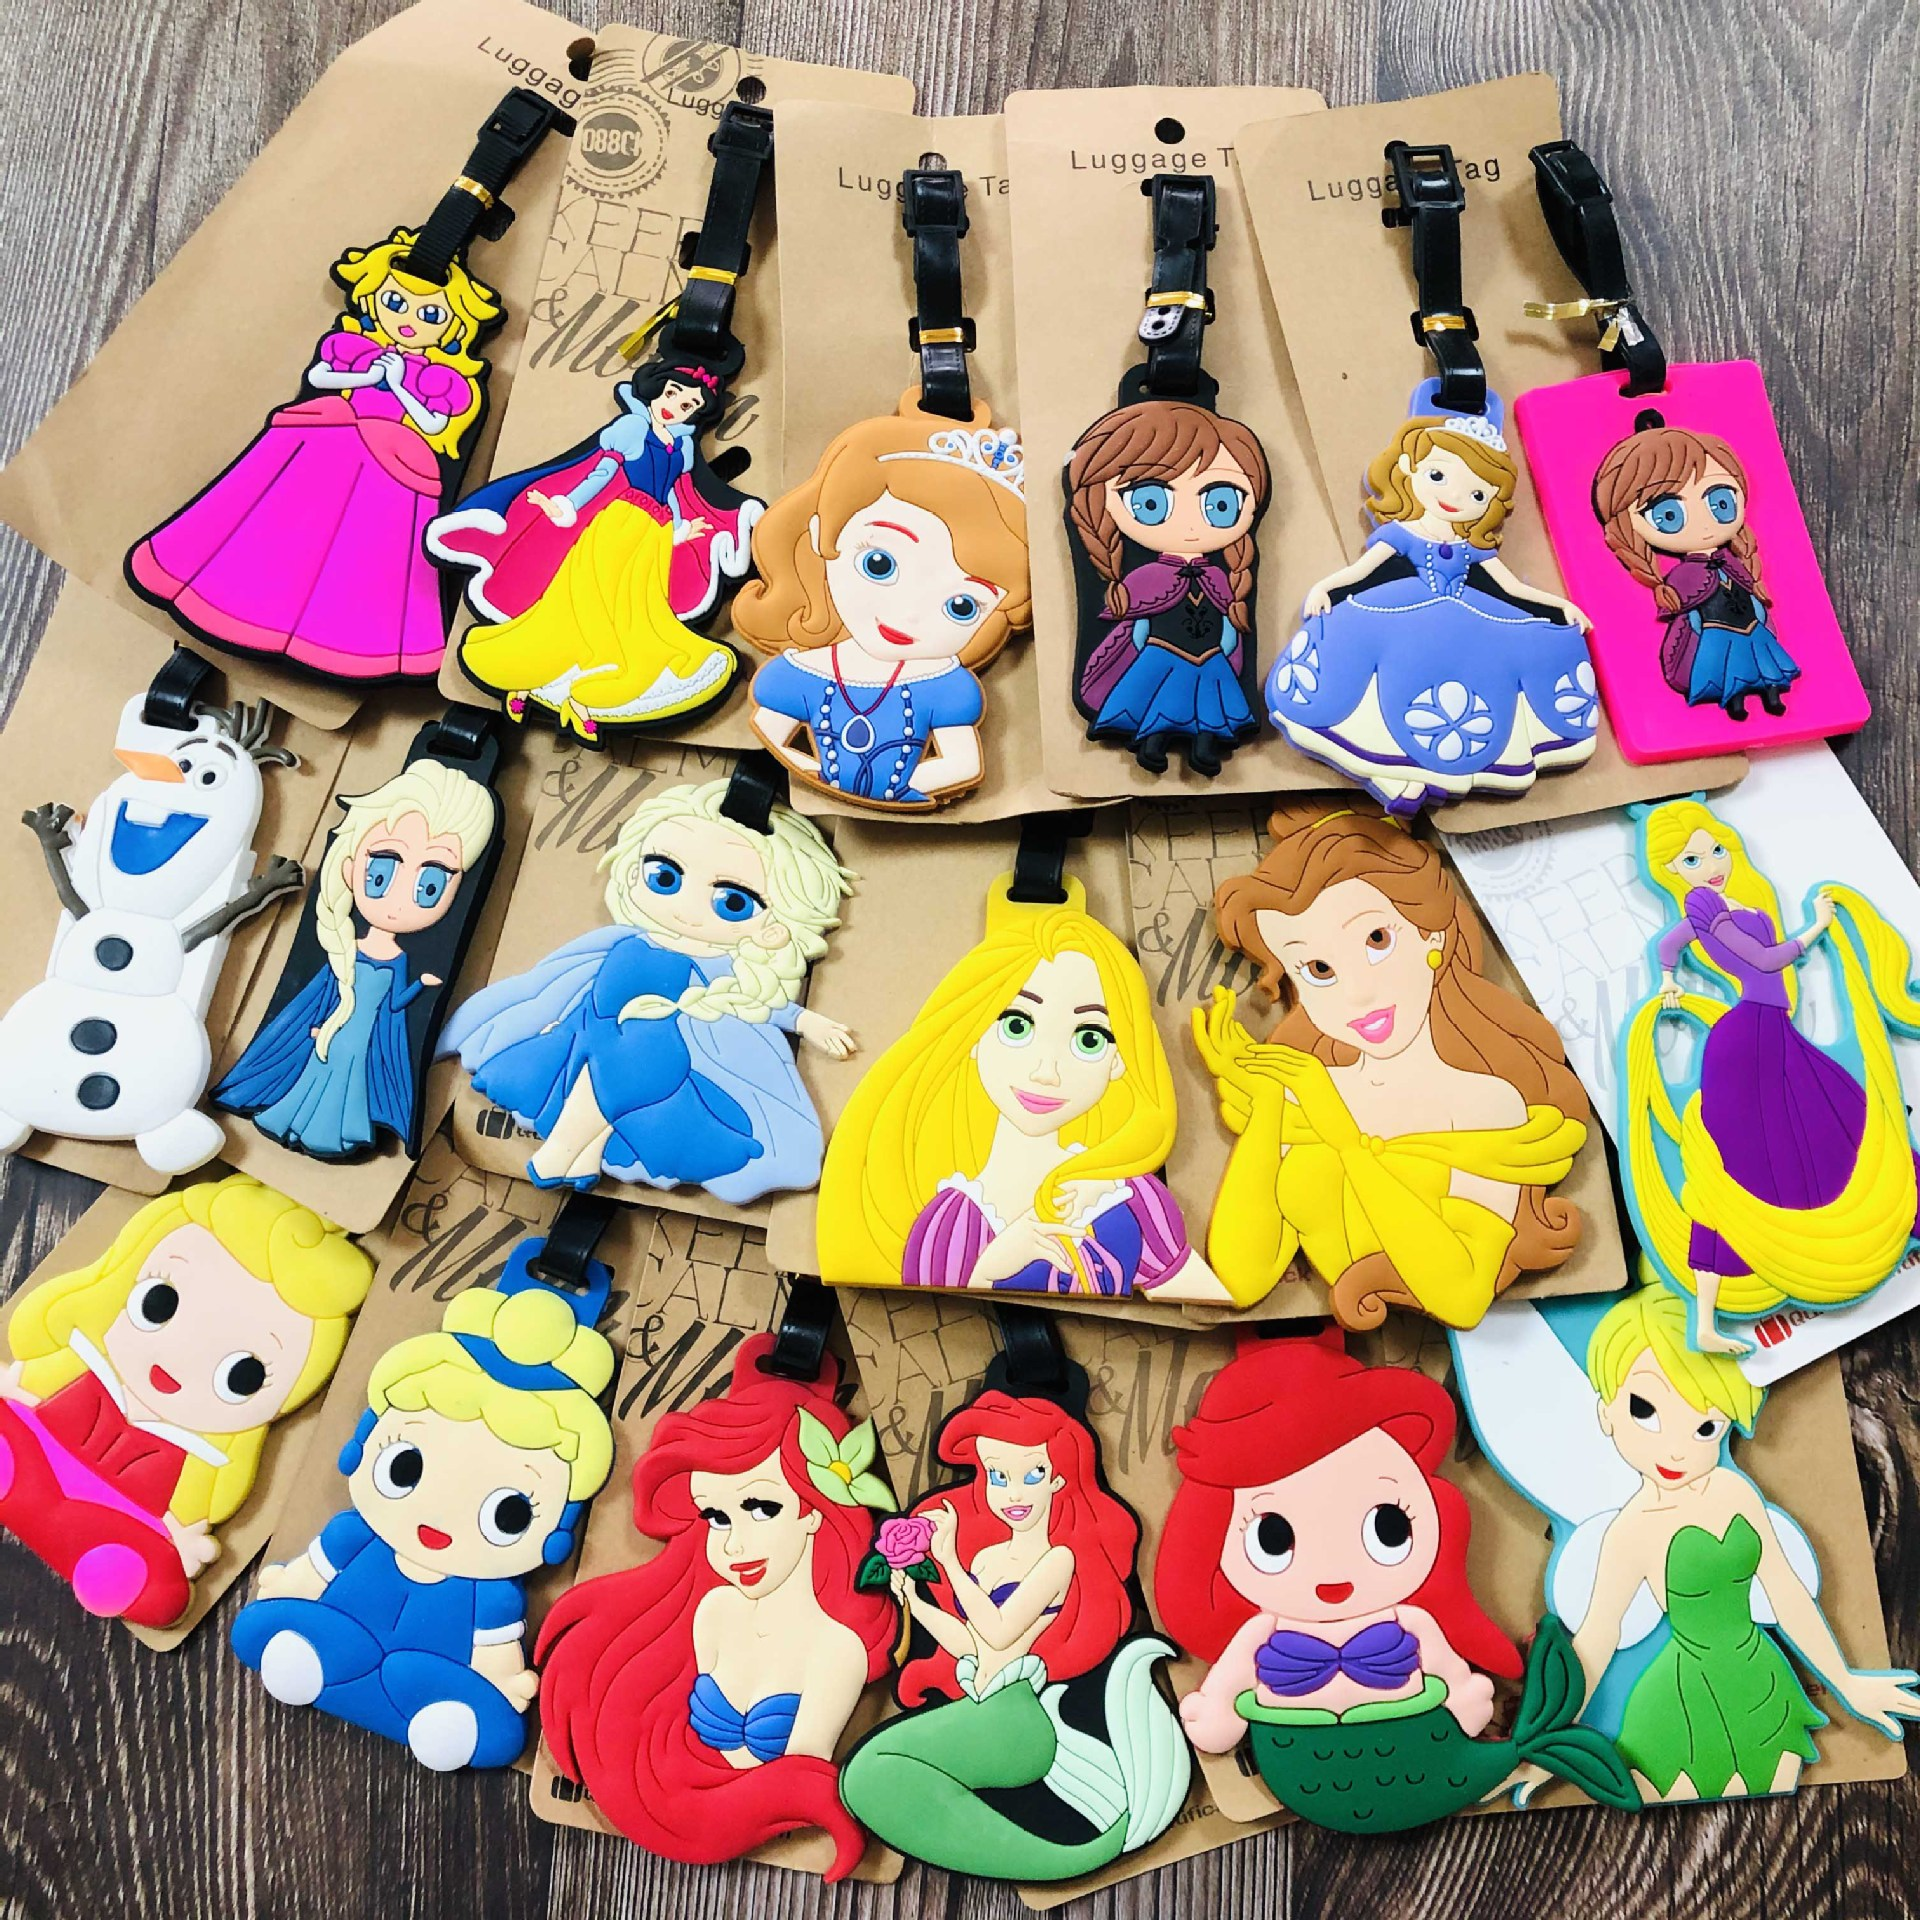 Snow White Princess Cartoon Bag Accessories Luggage Tag Suitcase ID Address Portable Tags Holder Baggage Travel Labels